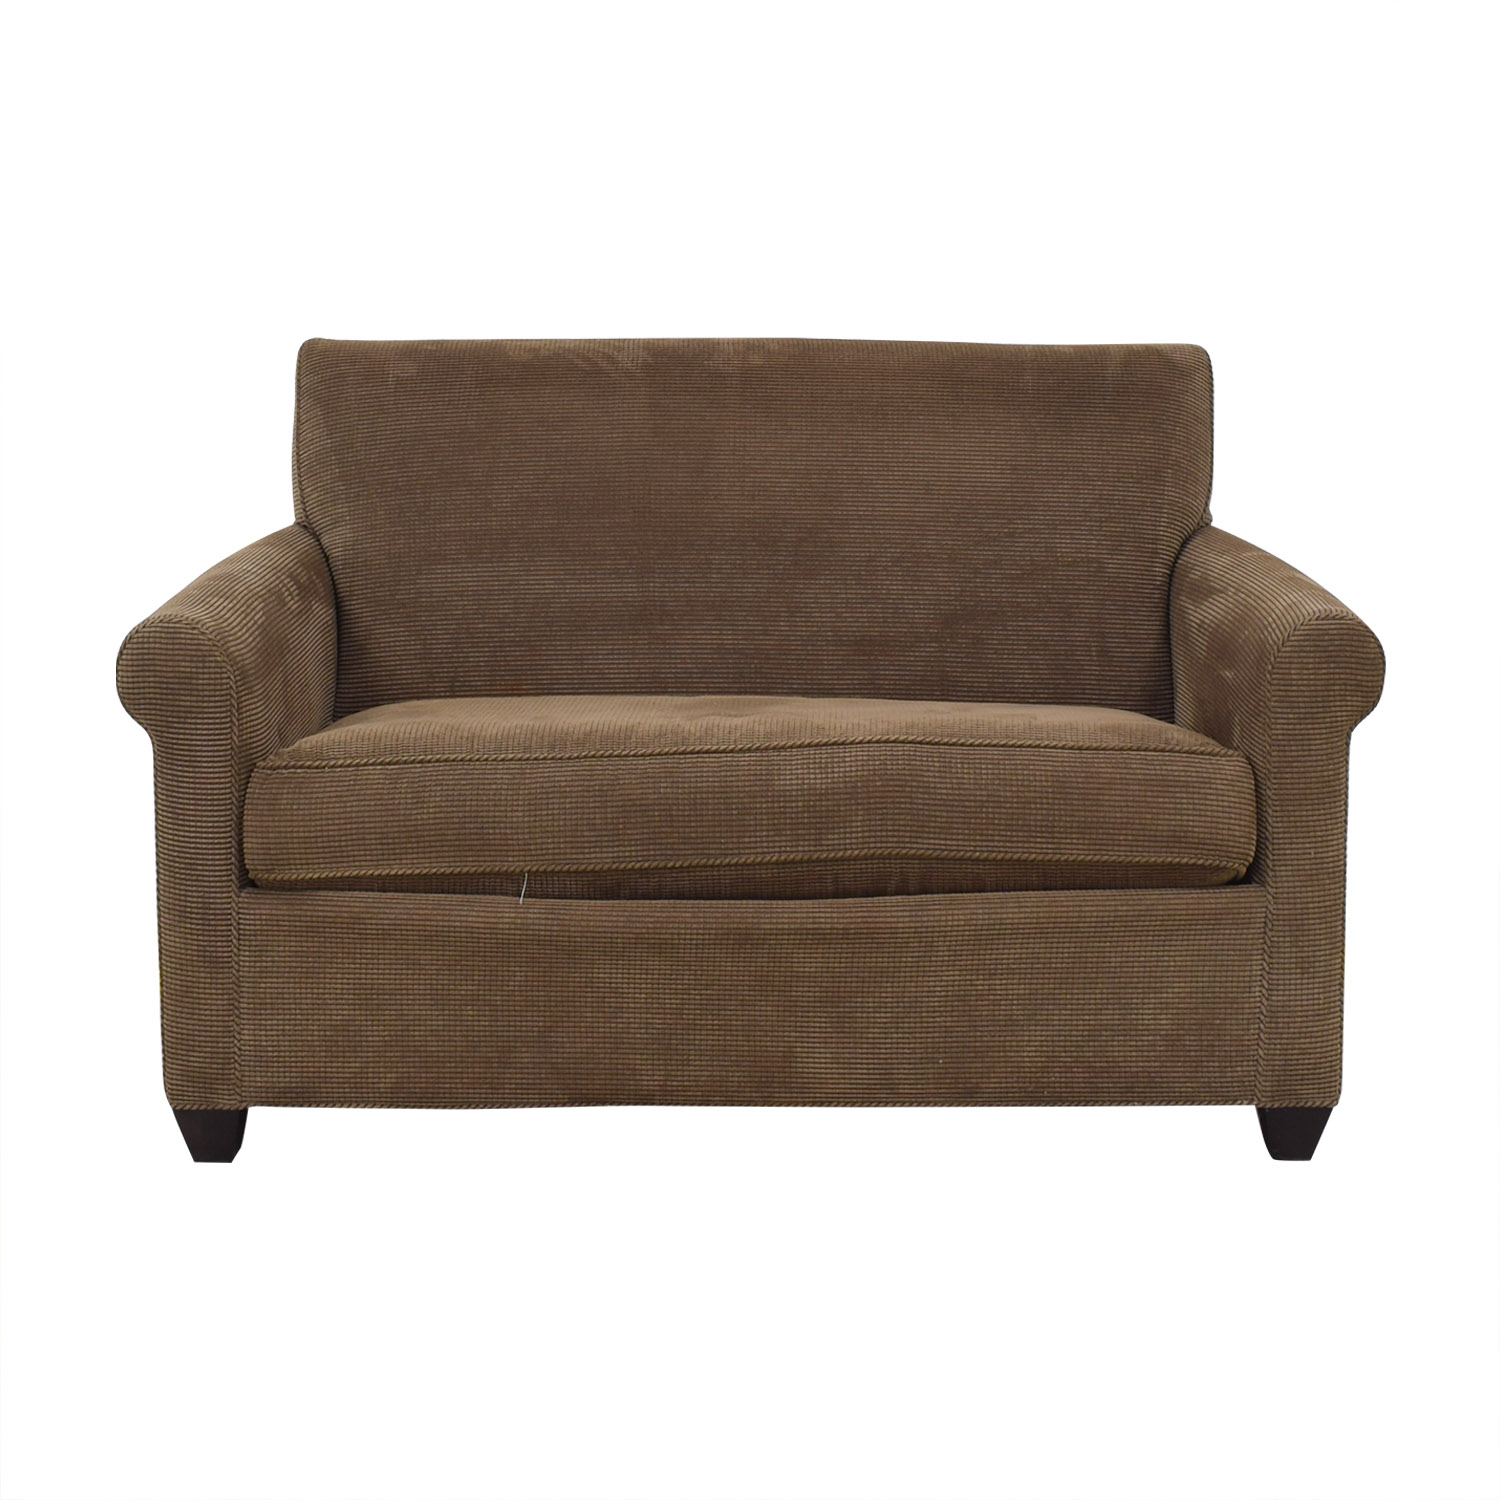 Crate & Barrel Hayward Twin Sleeper Sofa sale